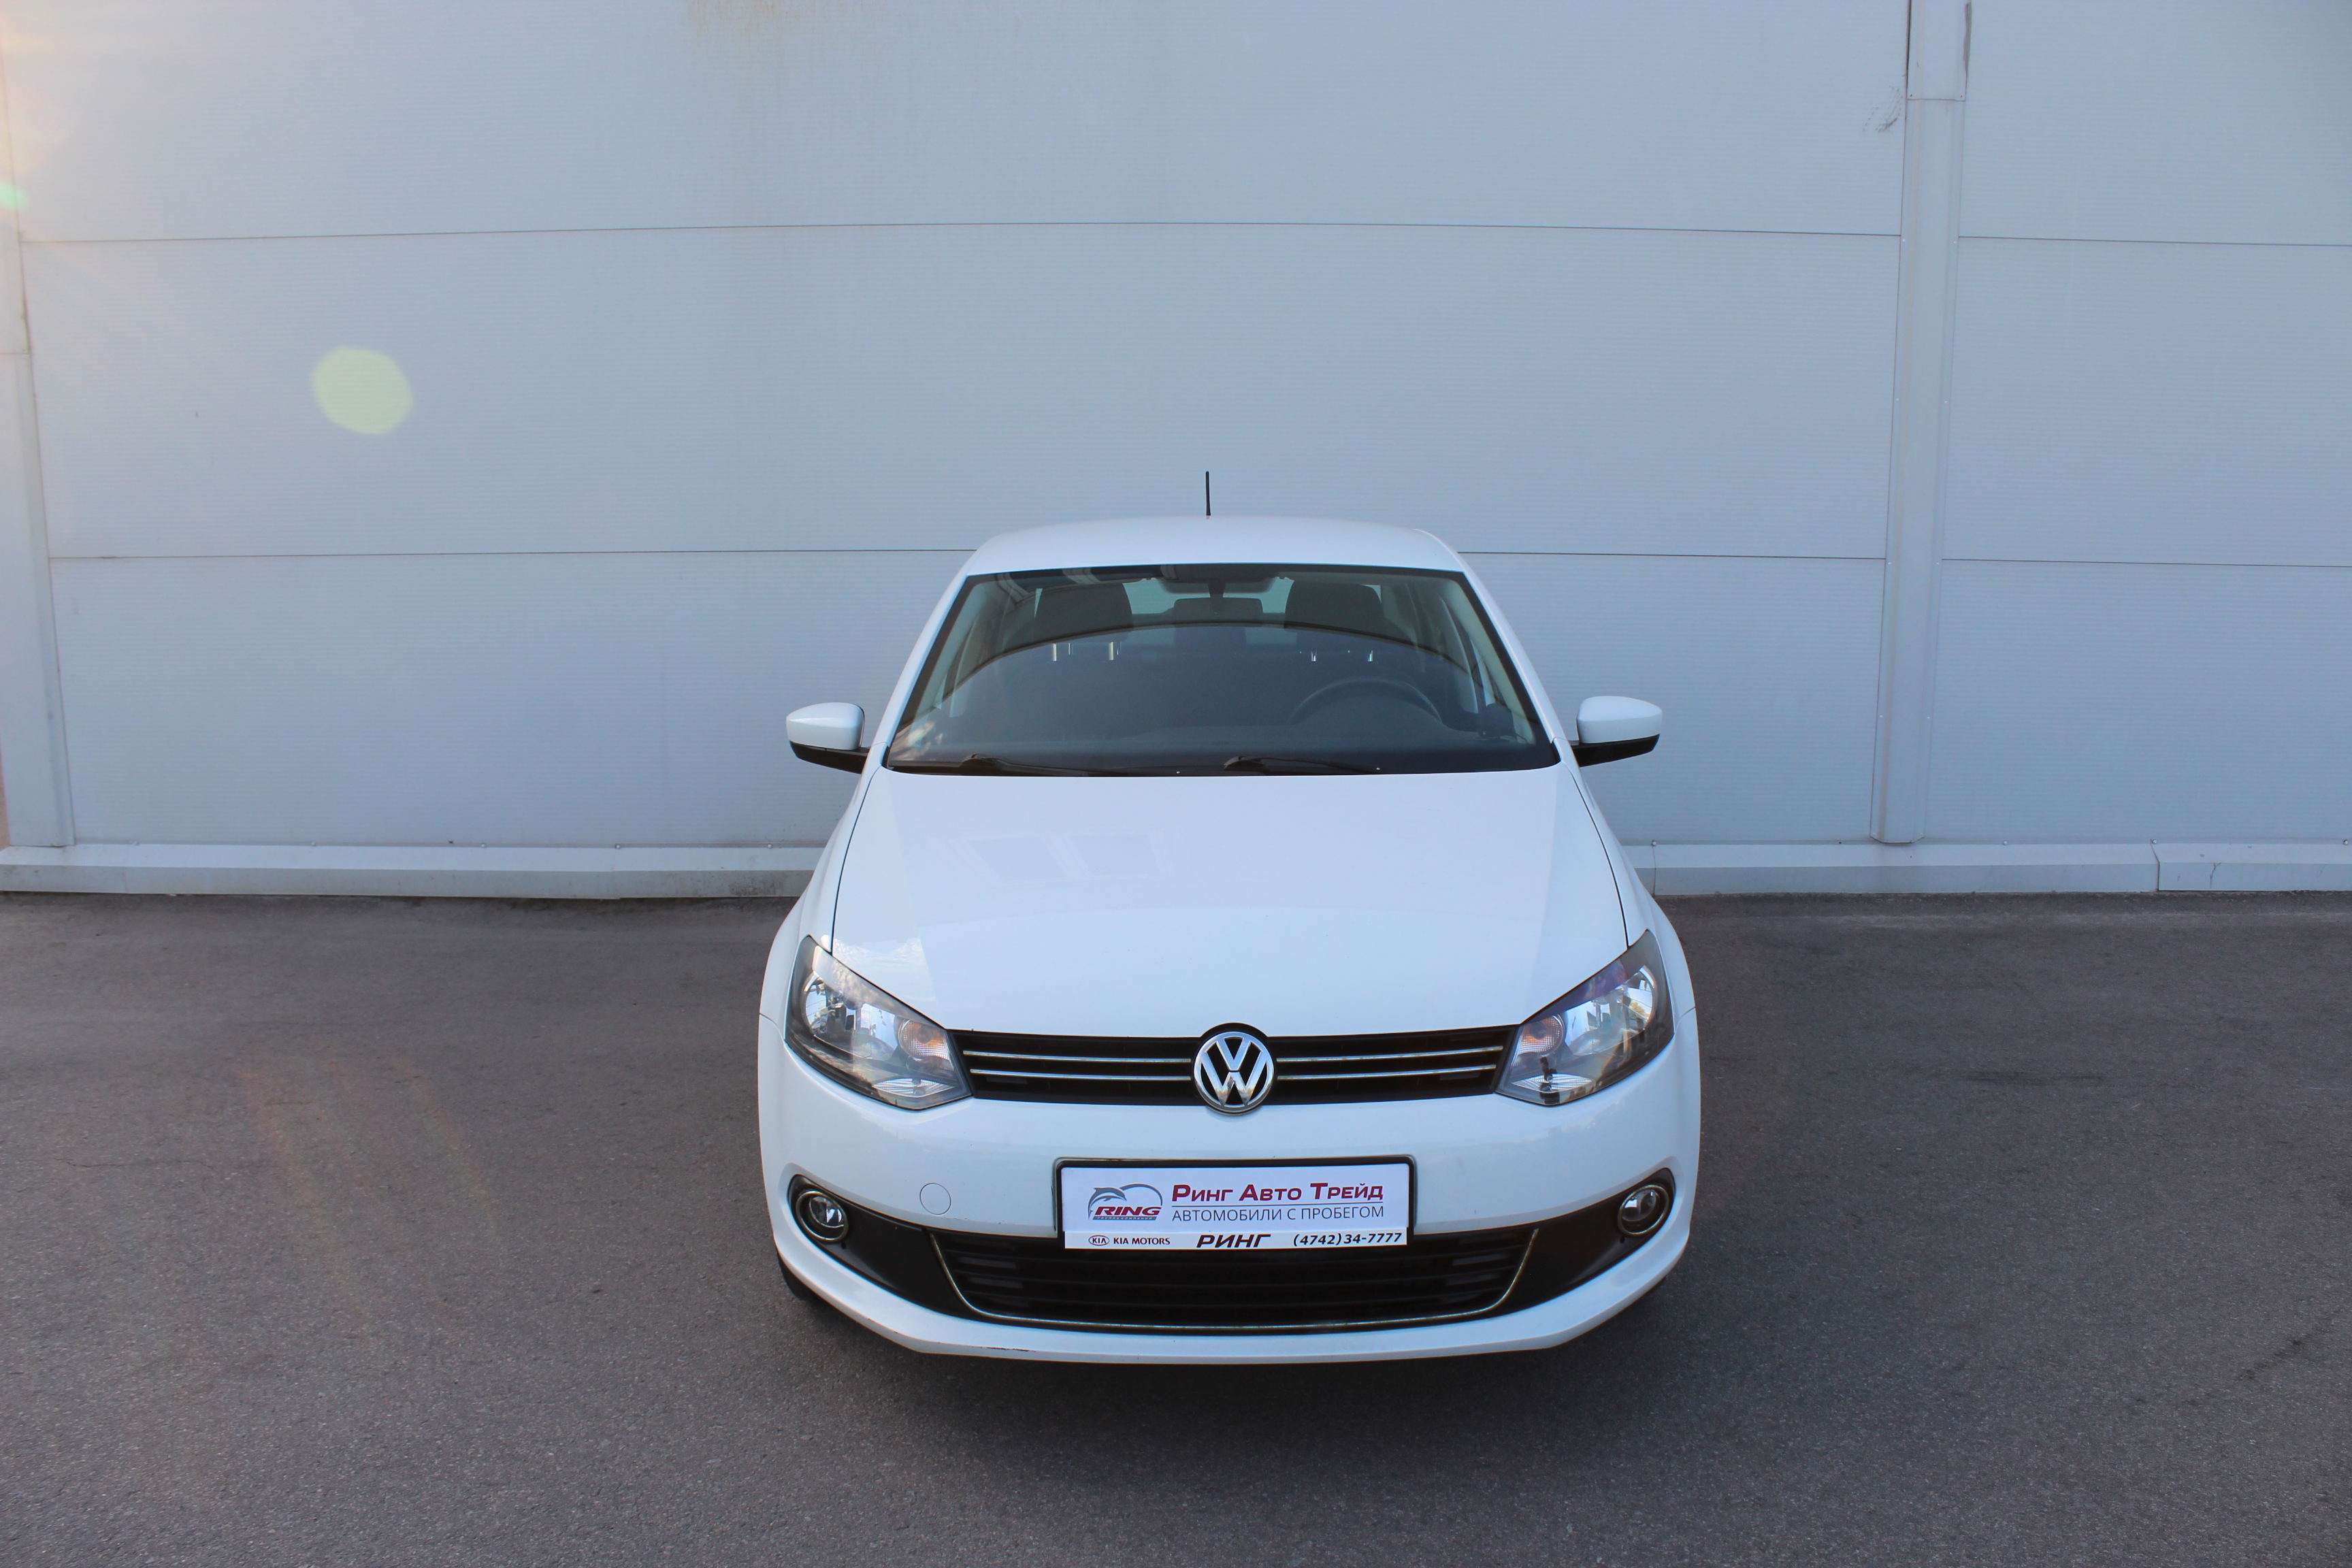 Volkswagen Polo Седан (2015г.)